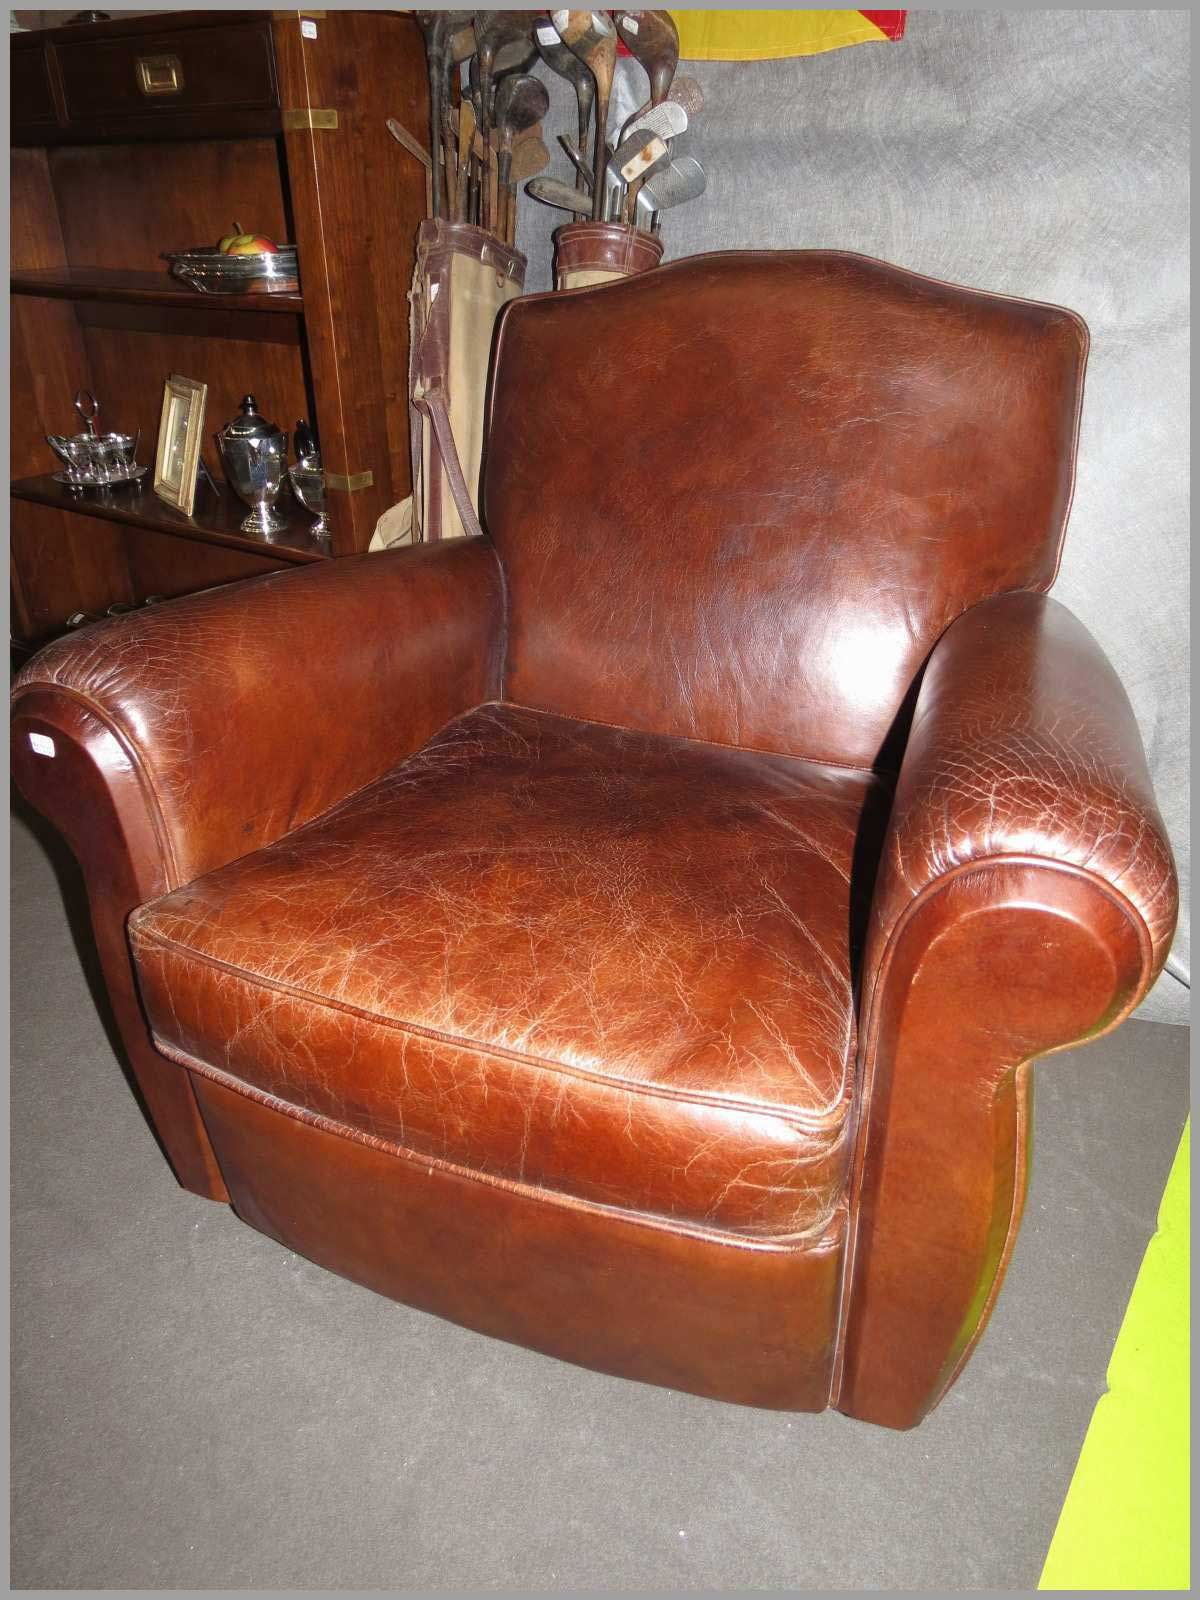 Fauteuil Chesterfield Cuir Occasion Fabuleux Fauteuil En Cuir Occasion Maison Design Wiblia O En 2020 Fauteuil Cuir Maison Design Fauteuil Chesterfield